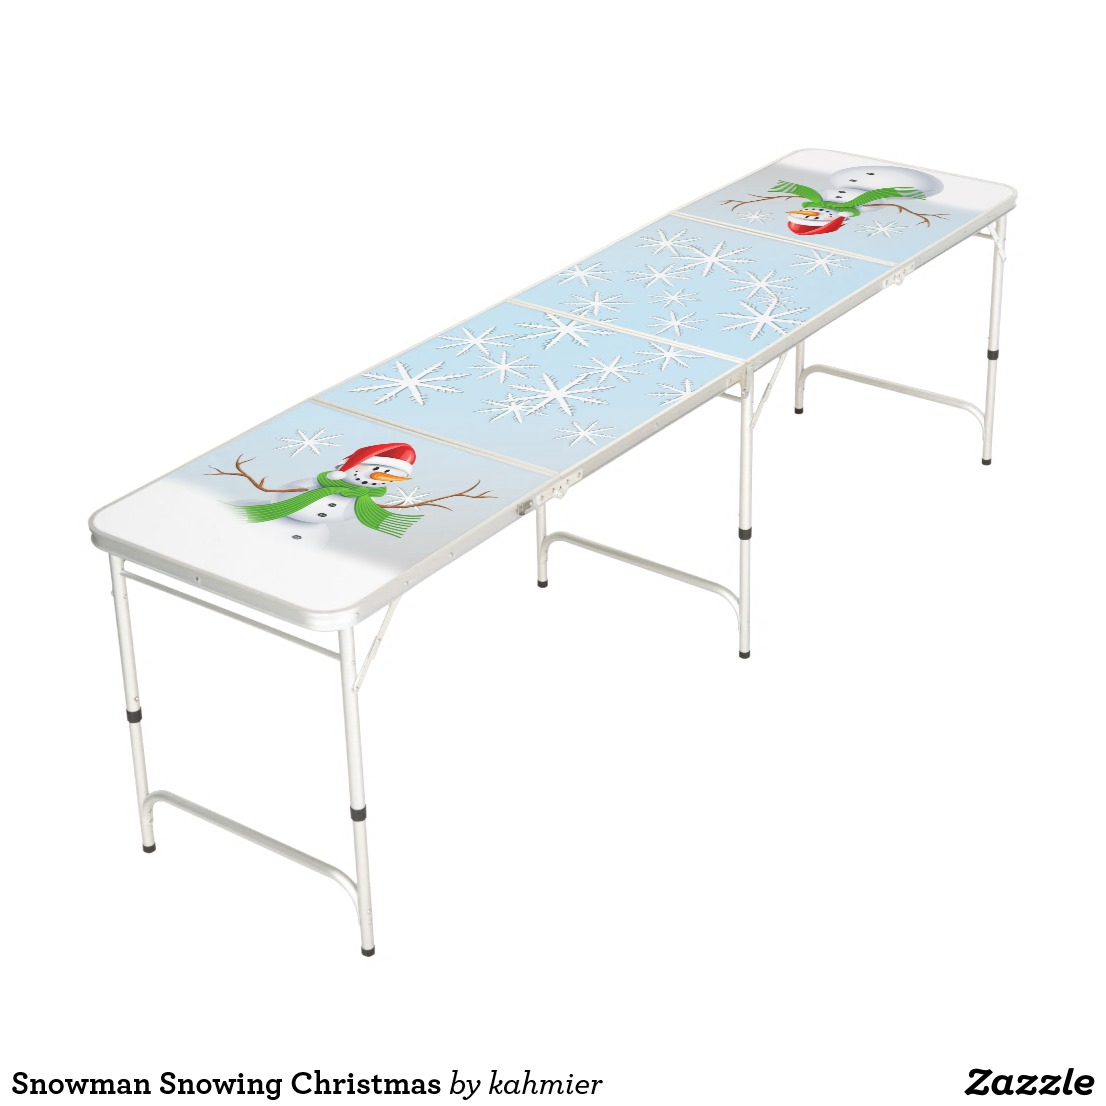 Snowman Snowing Christmas Beer Pong Table